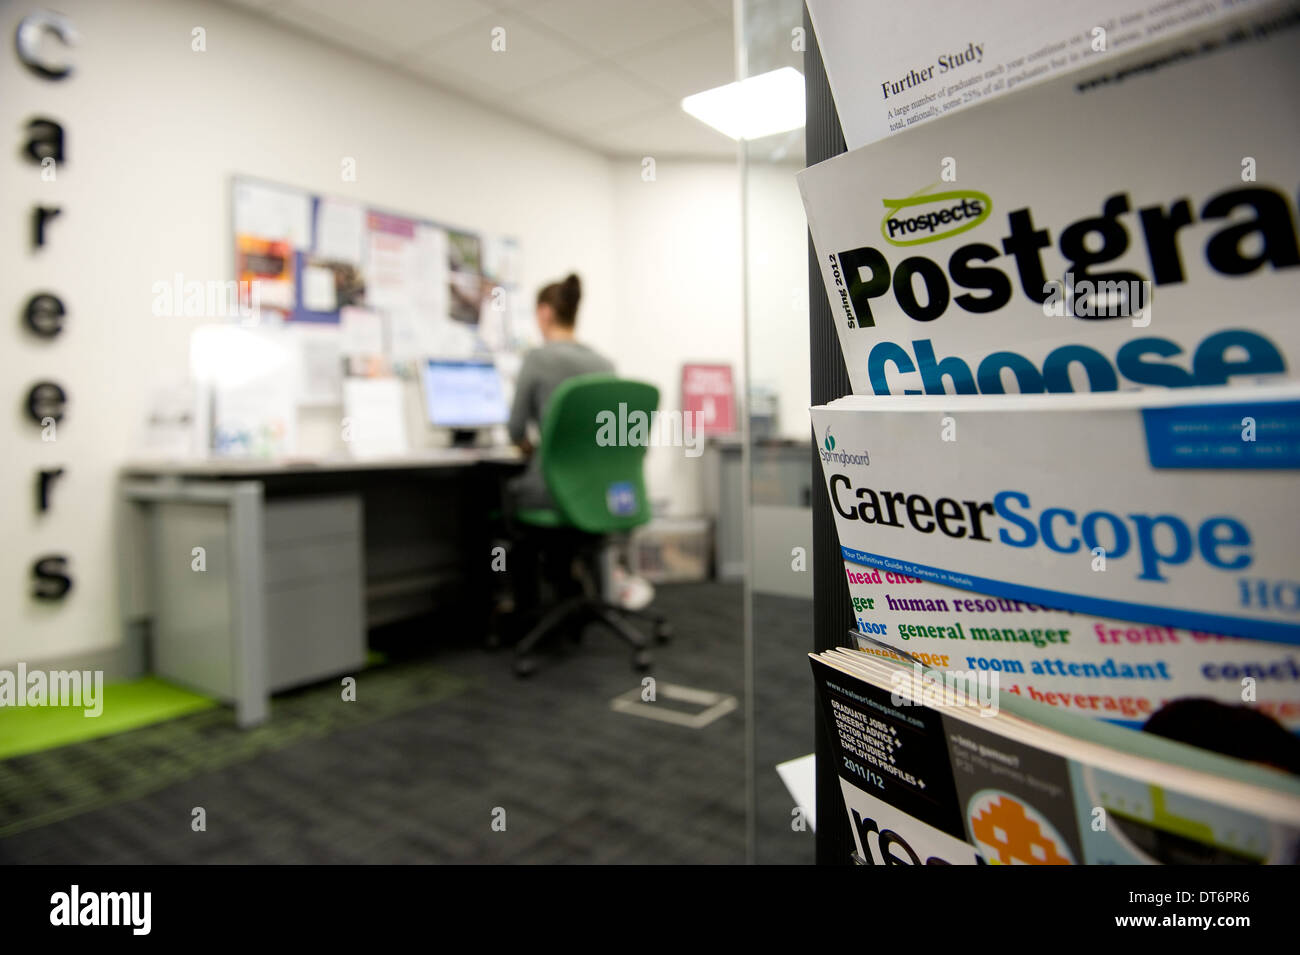 A college careers office. Stock Photo